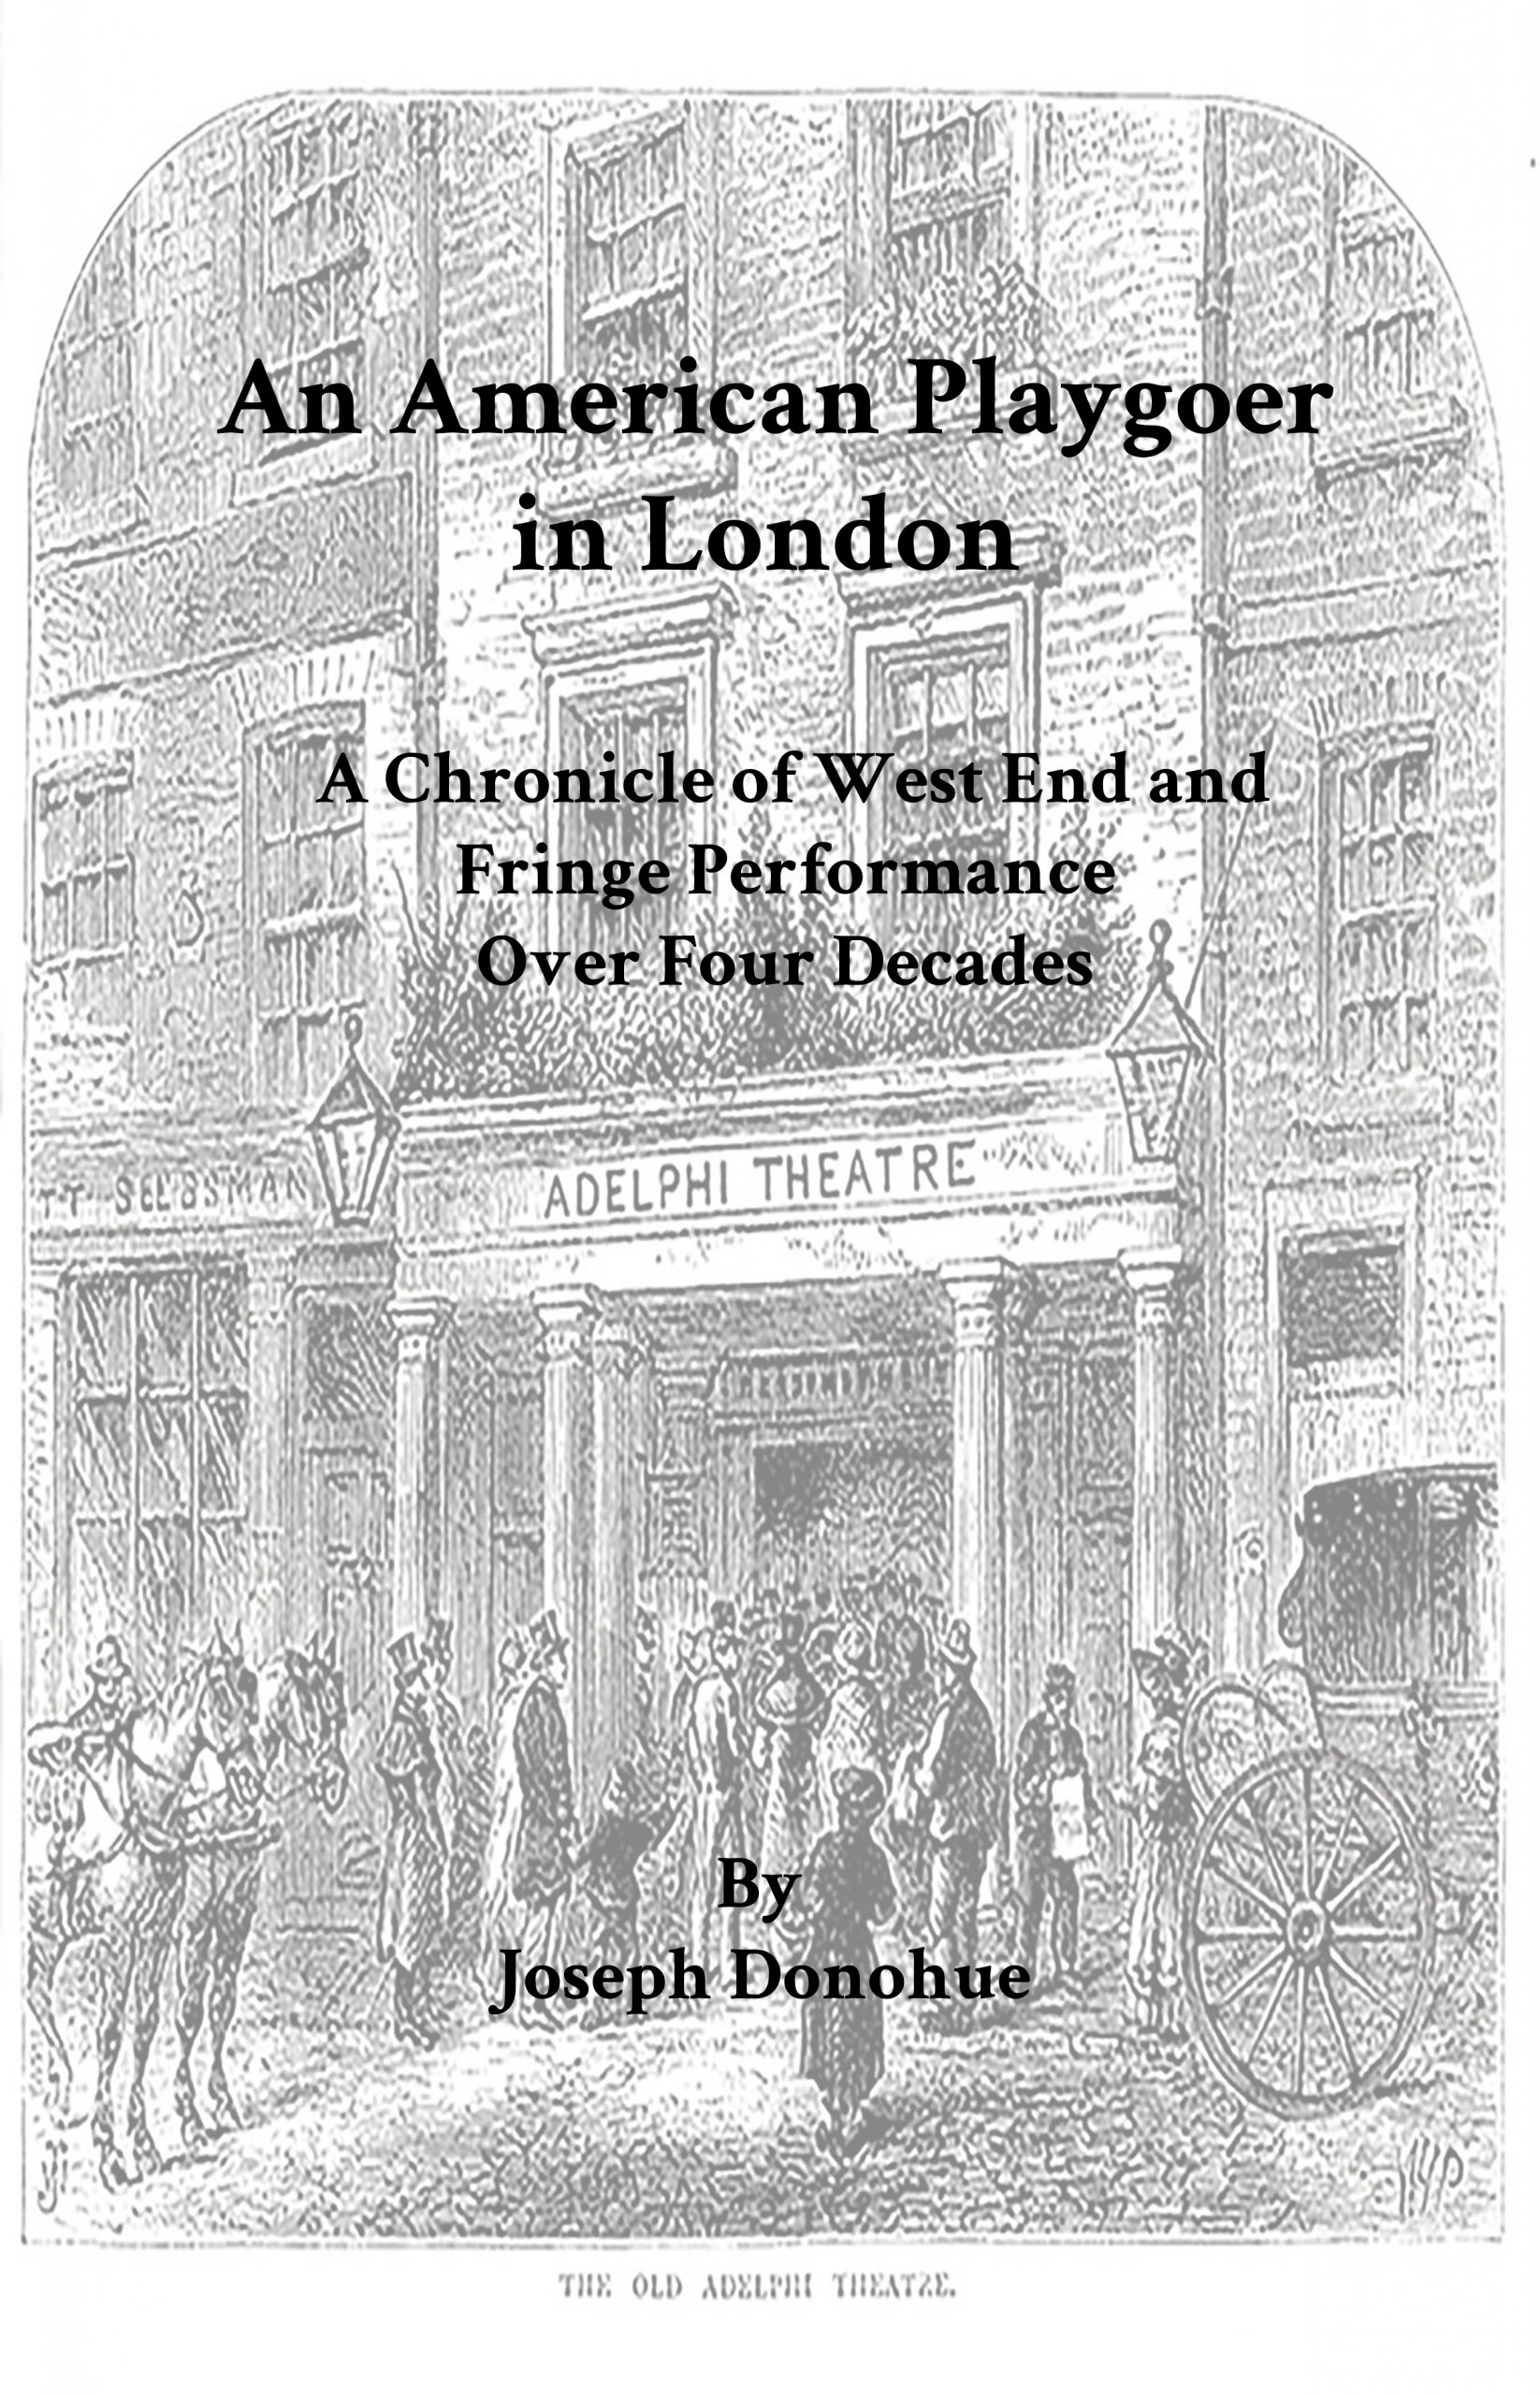 Cover image for An American Playgoer in London